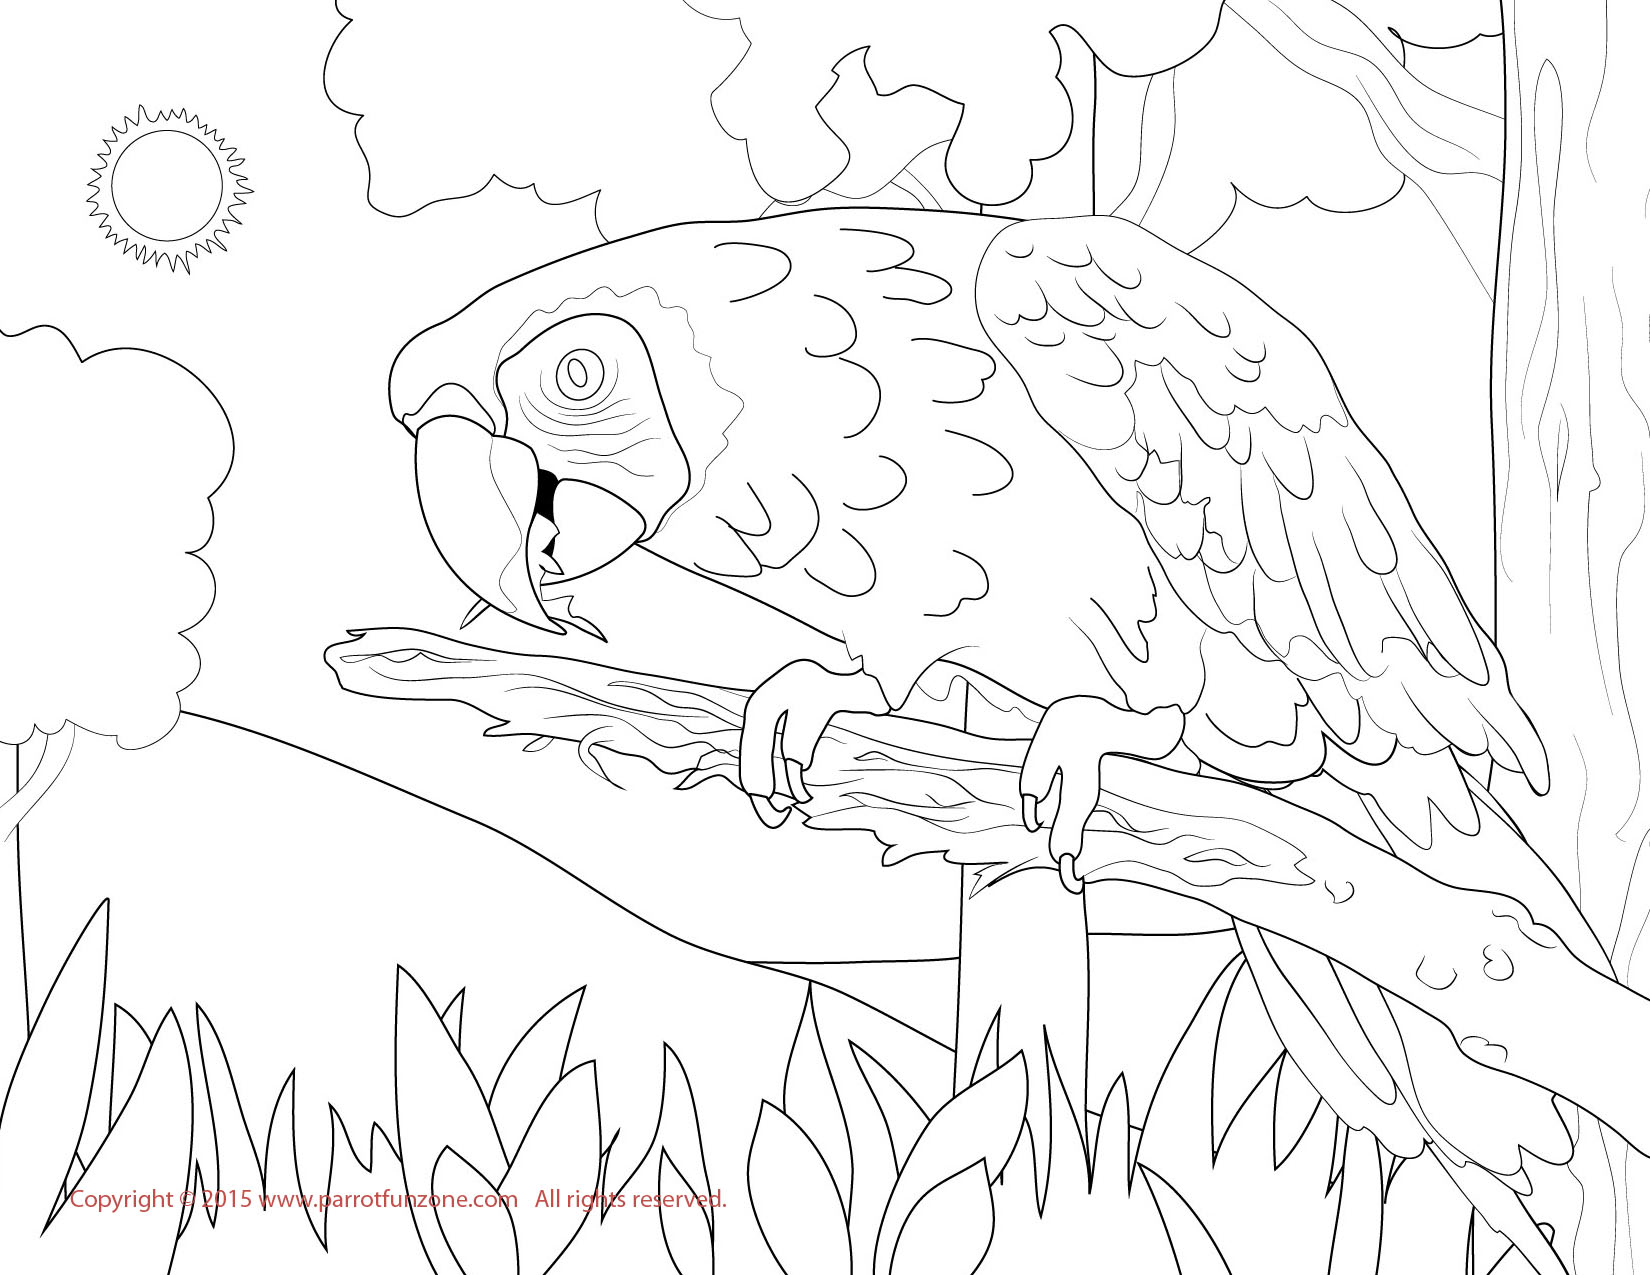 Adult Cute Scarlet Macaw Coloring Page Images best scarlet macaw coloring page images